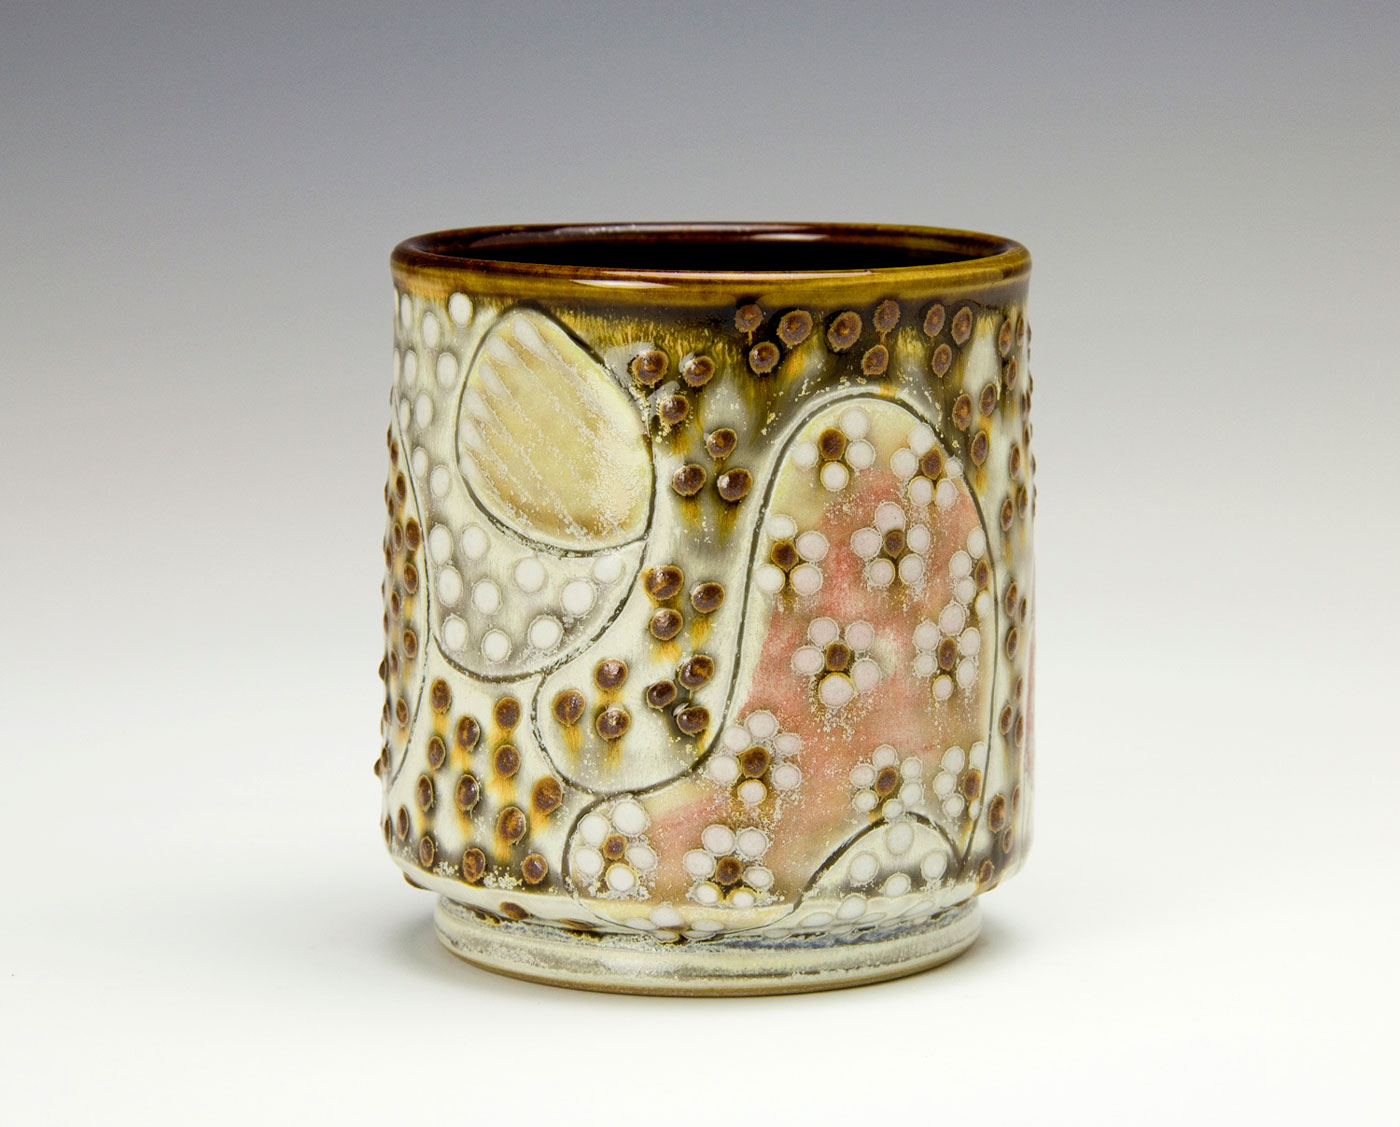 Pattern-Medley-Drinking-cup-Samantha-Henneke-Seagrove-Pottery.jpg